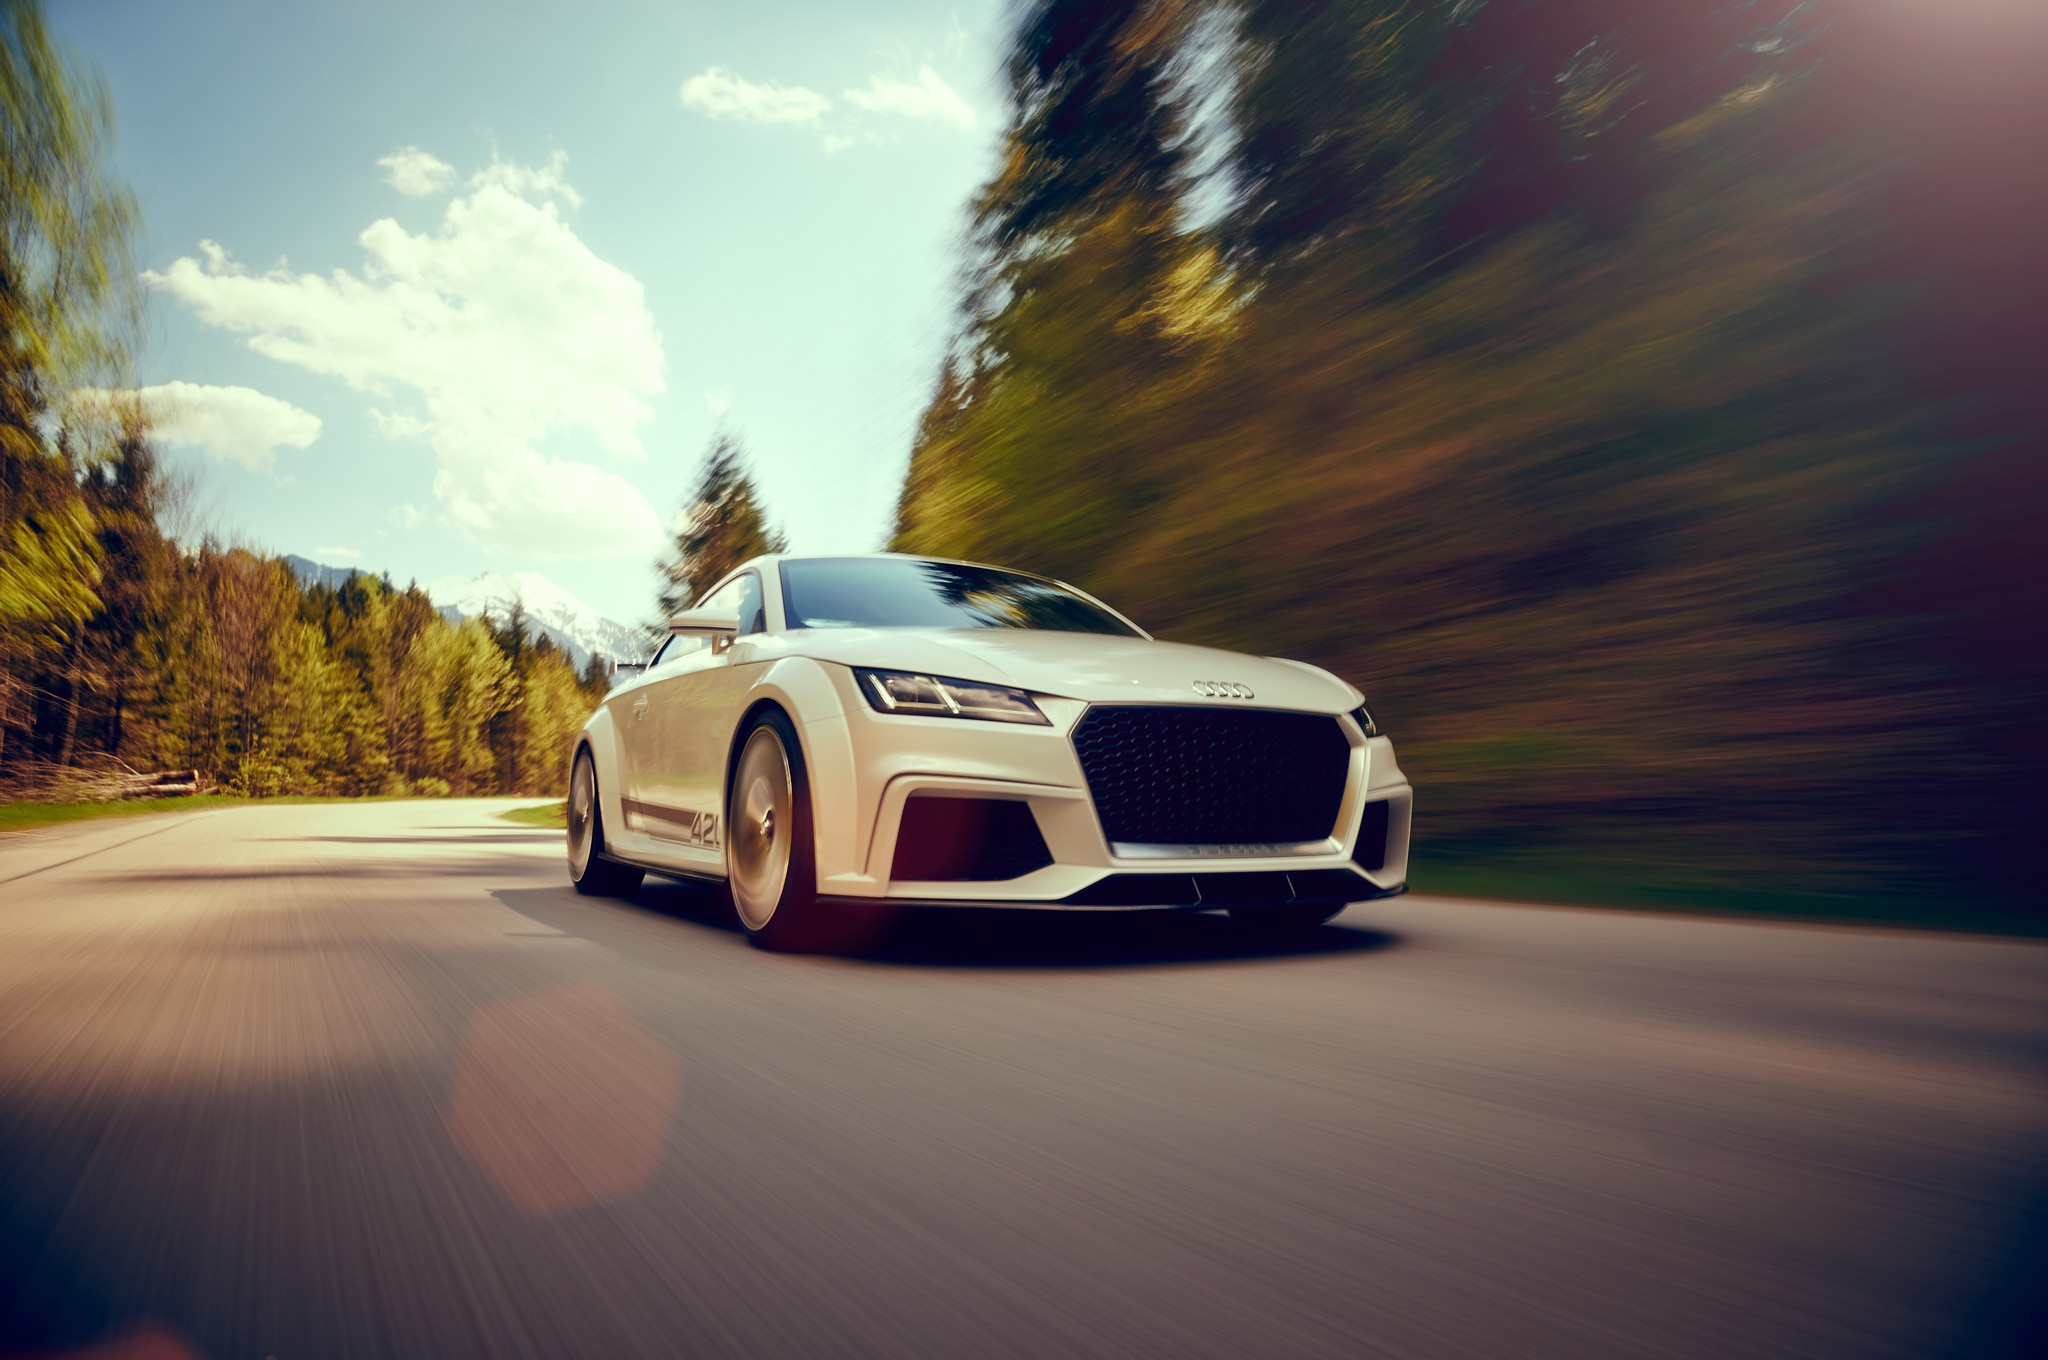 Audi TT Quattro Sport Concept Front View In Motion From Asphalt